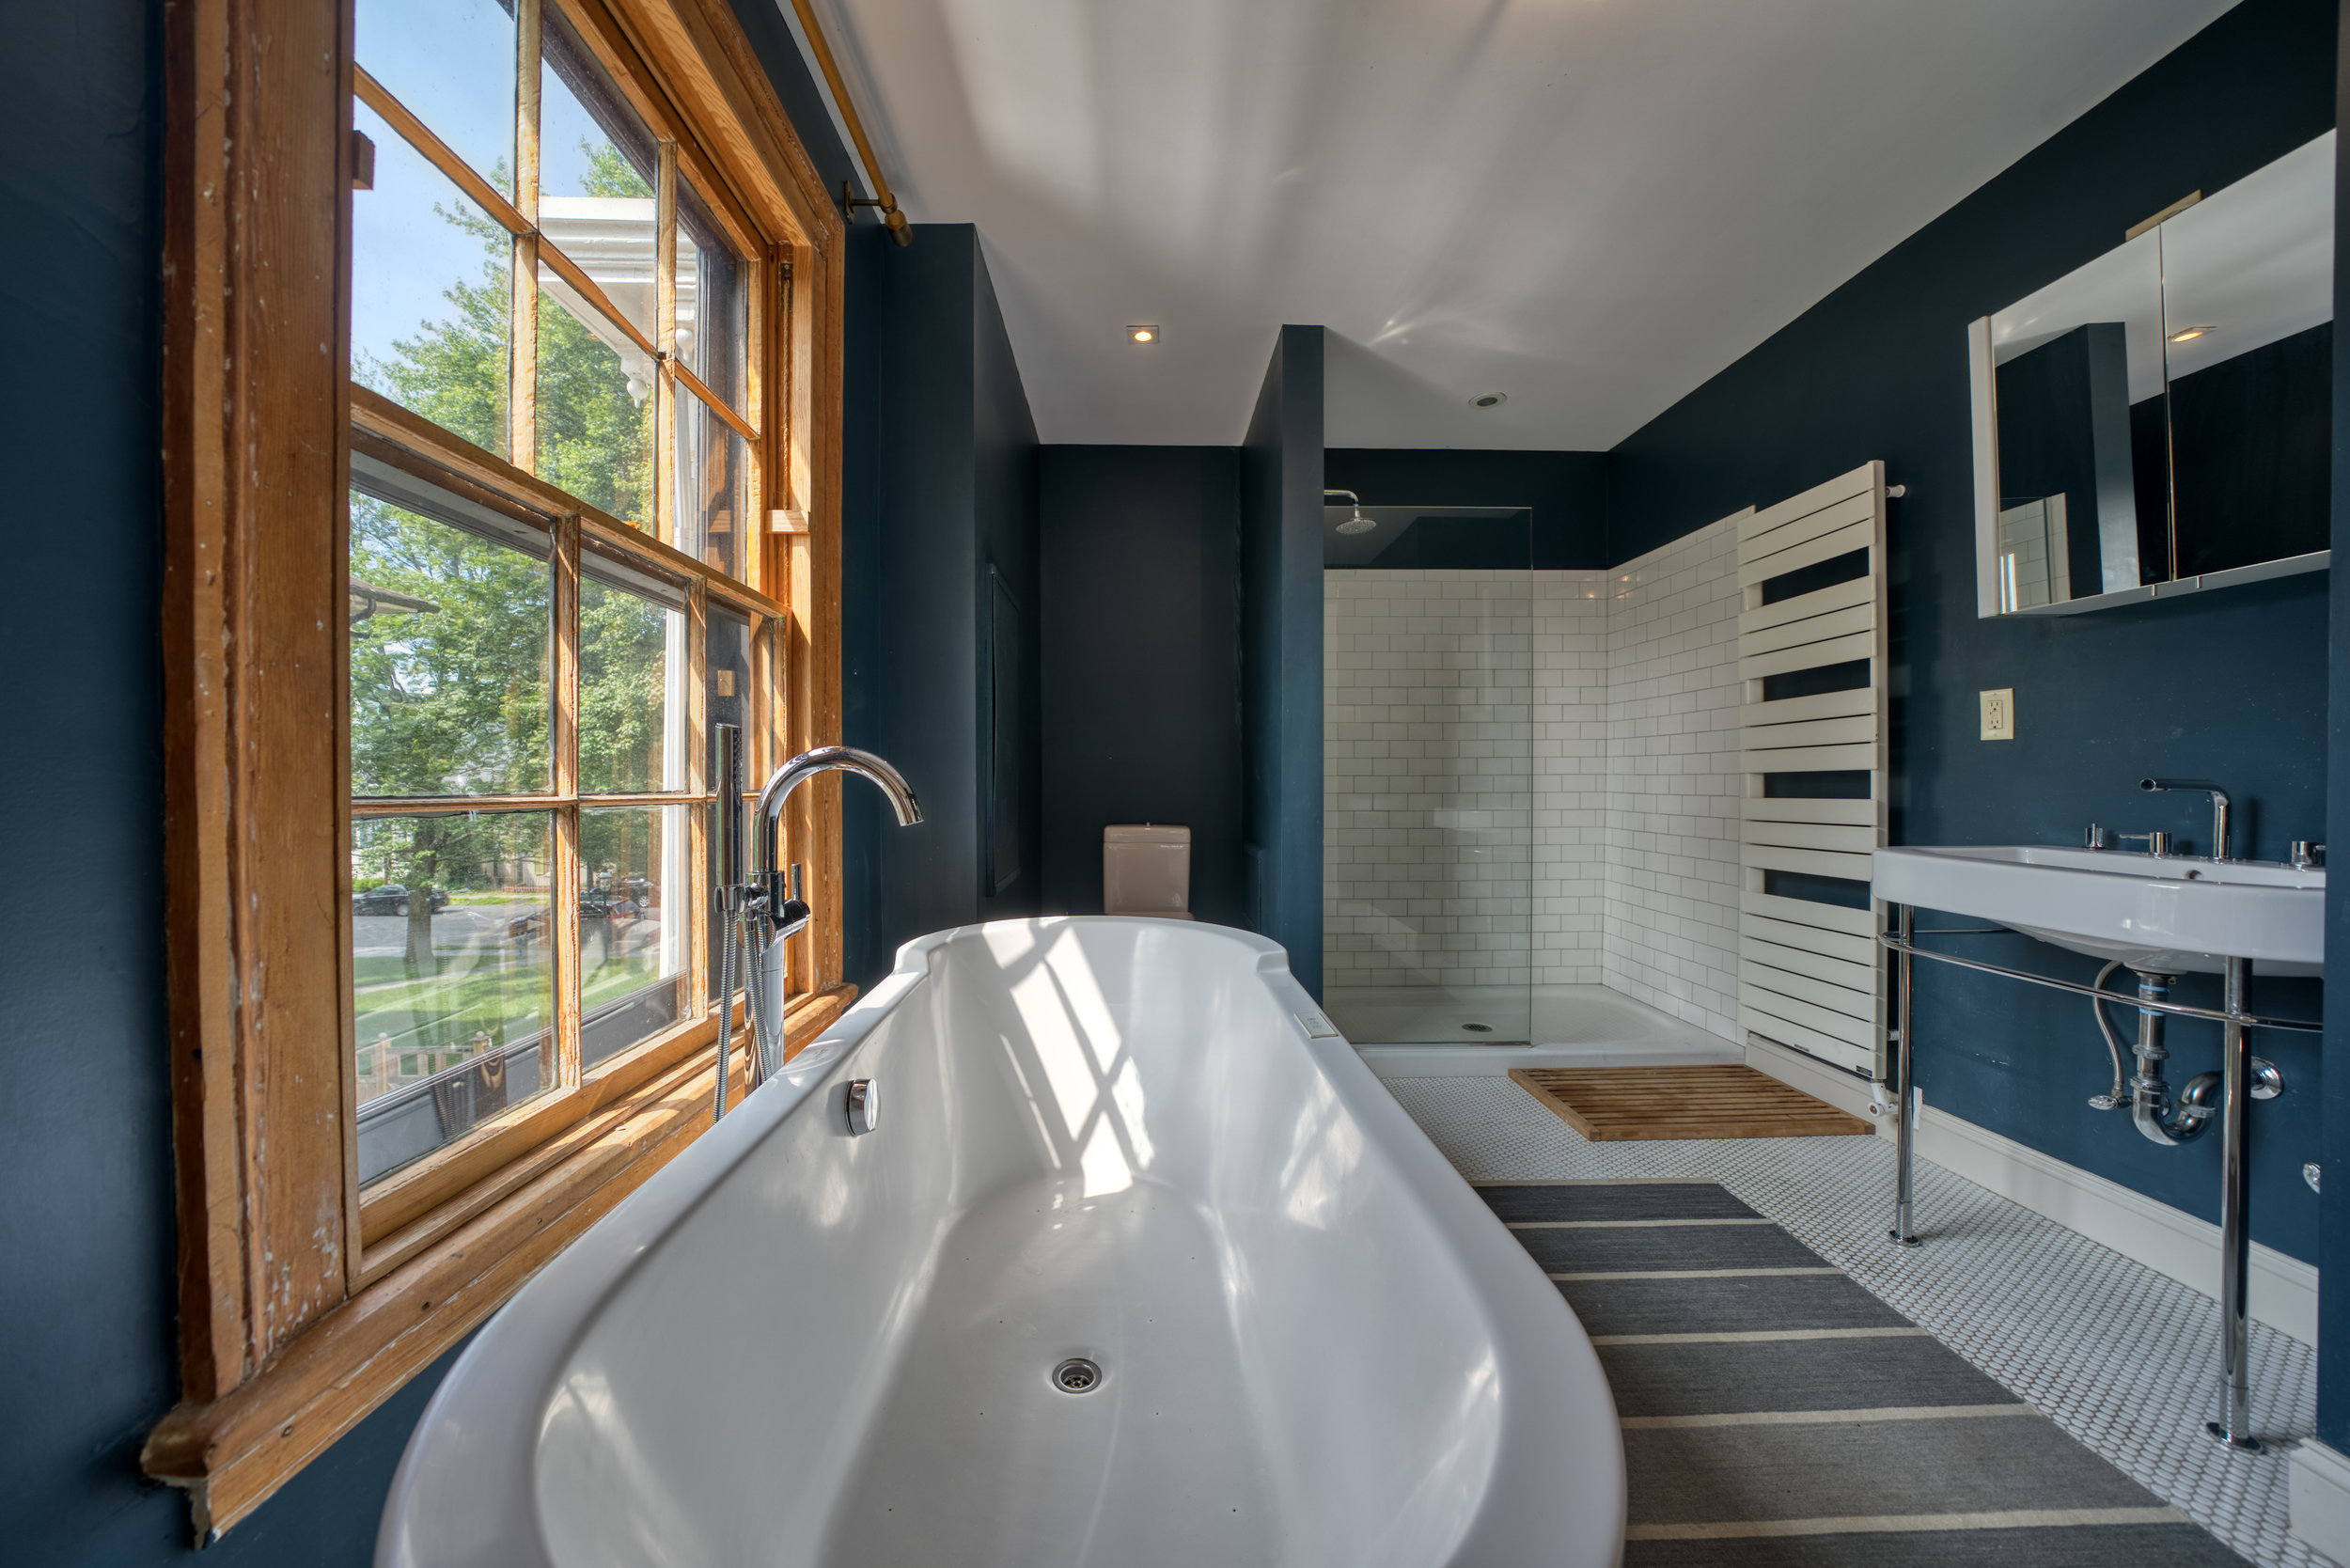 UptownKingston-Master-Bathroom-1.jpg